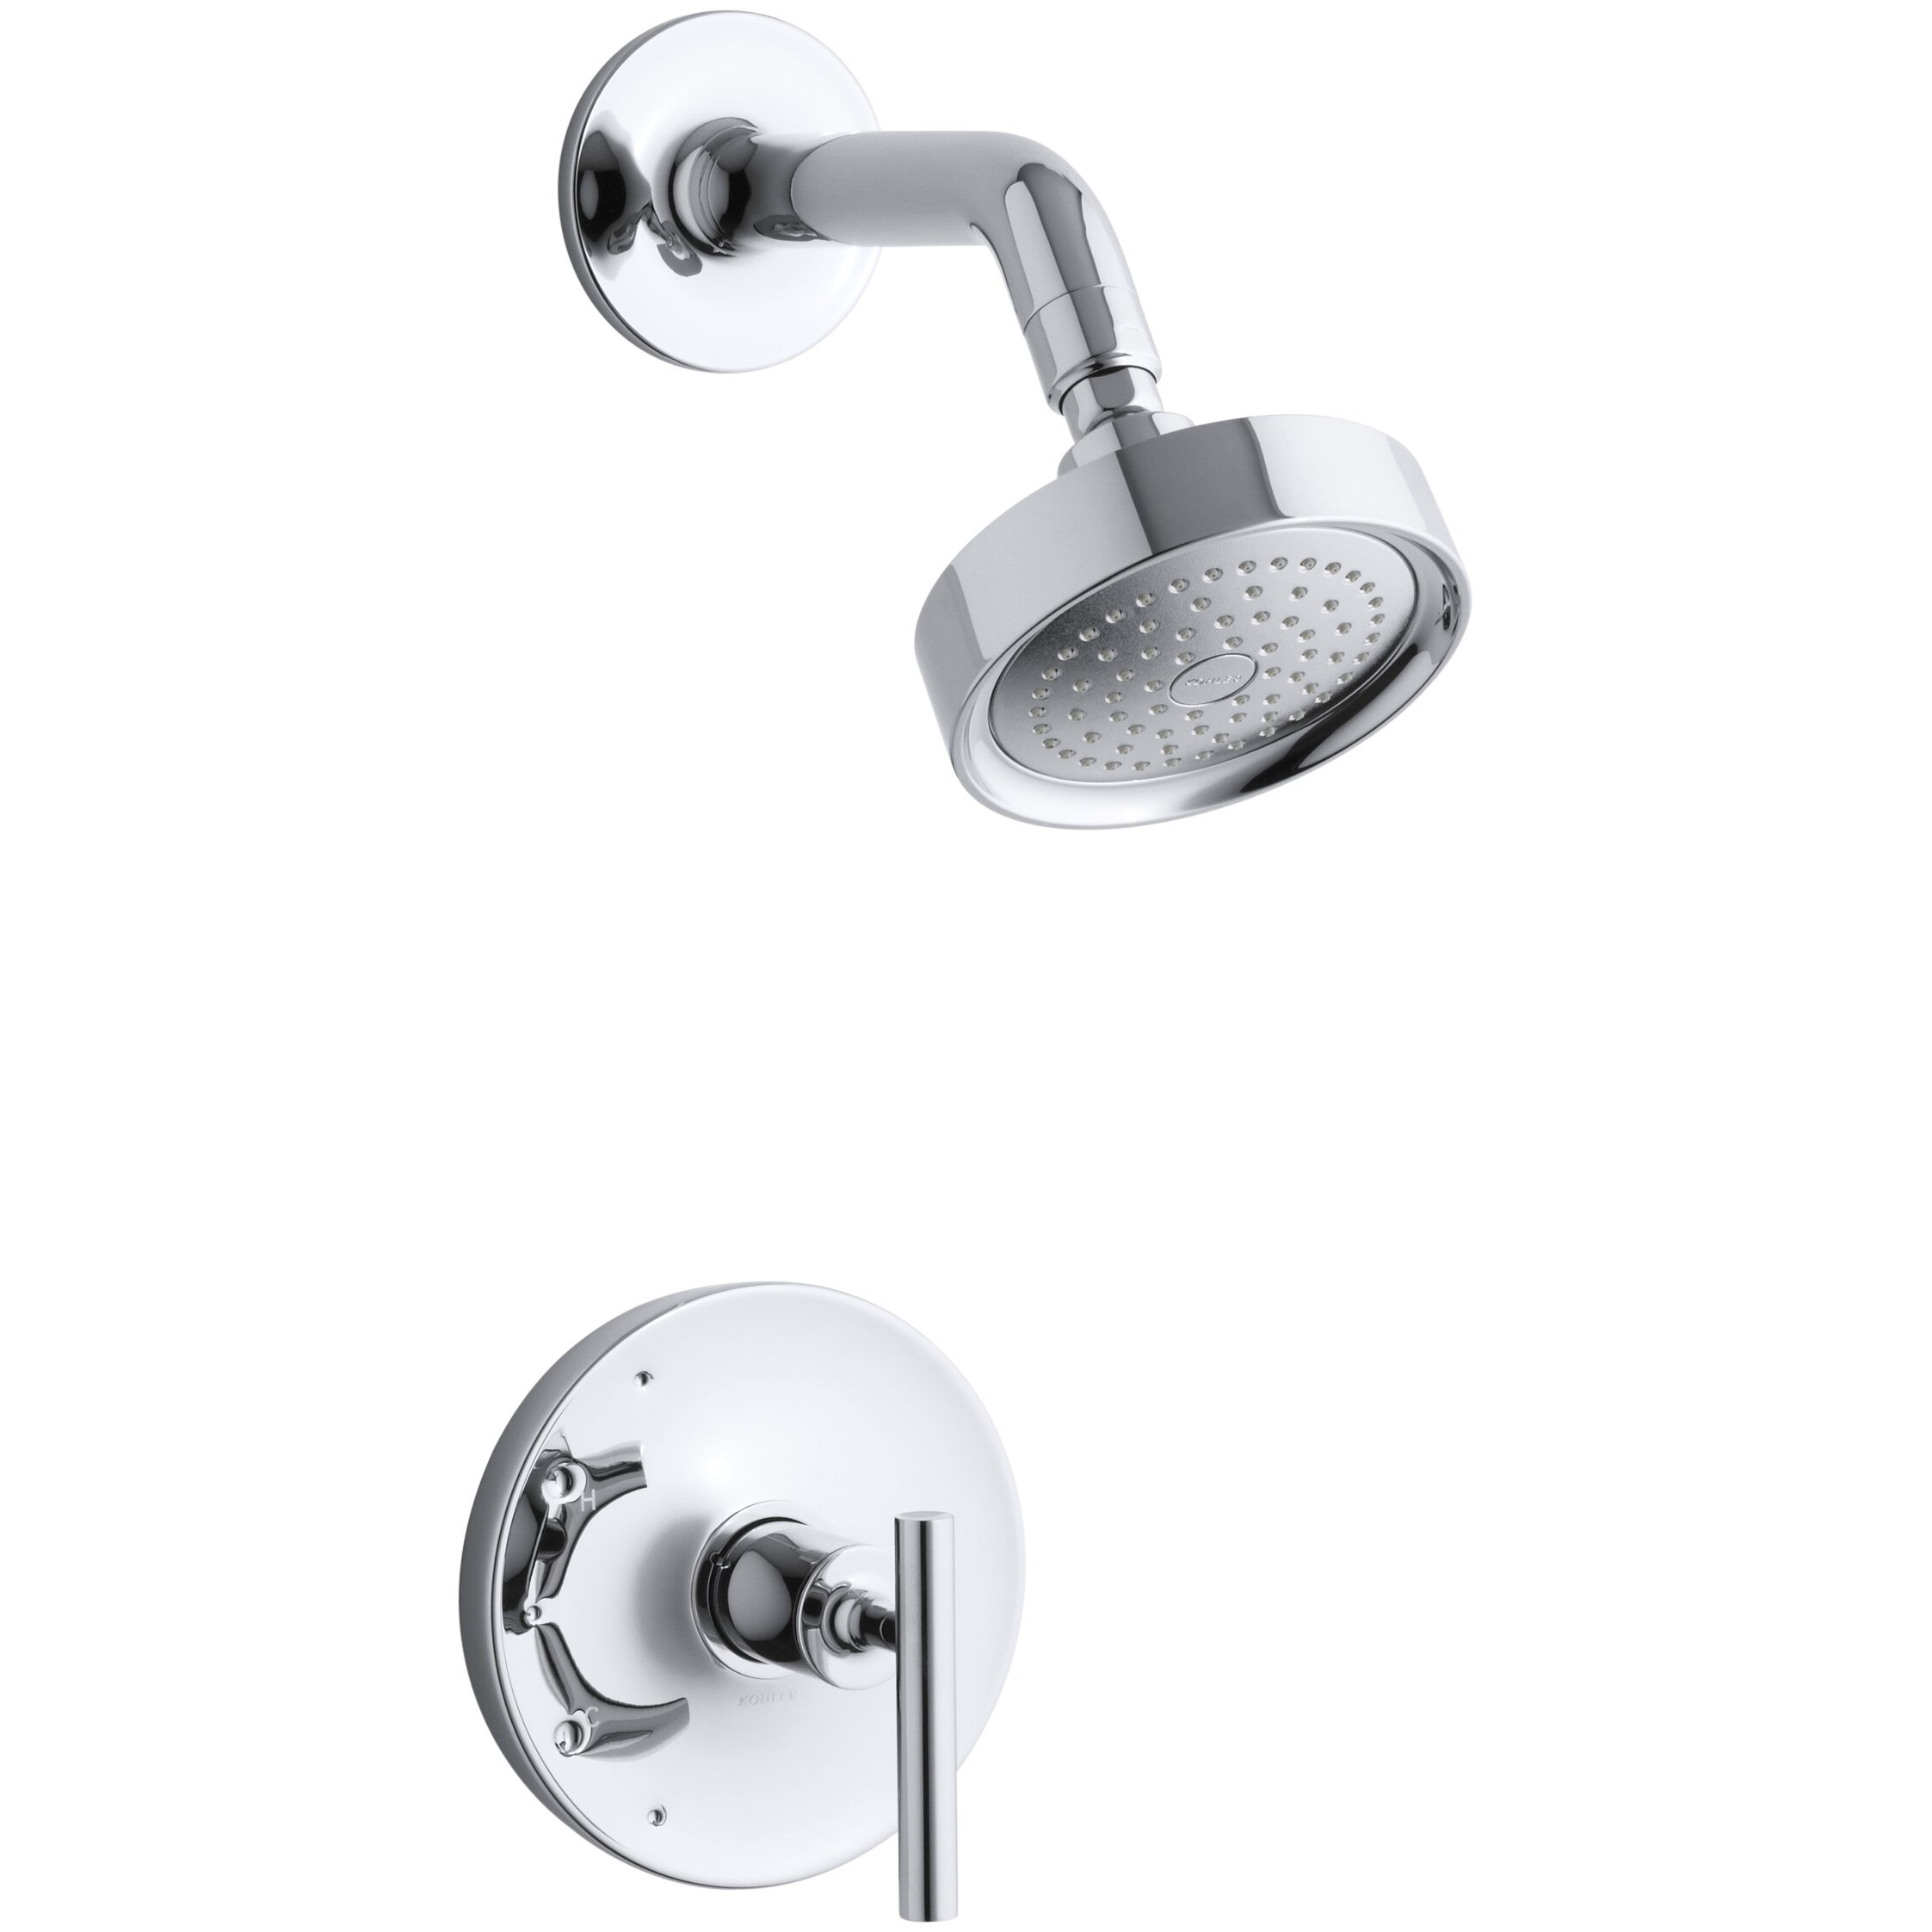 Kohler Purist Rite-Temp Pressure-Balancing Shower Faucet Trim with ... - Kohler Purist Rite-Temp Pressure-Balancing Shower Faucet Trim with Lever  Handle, Valve